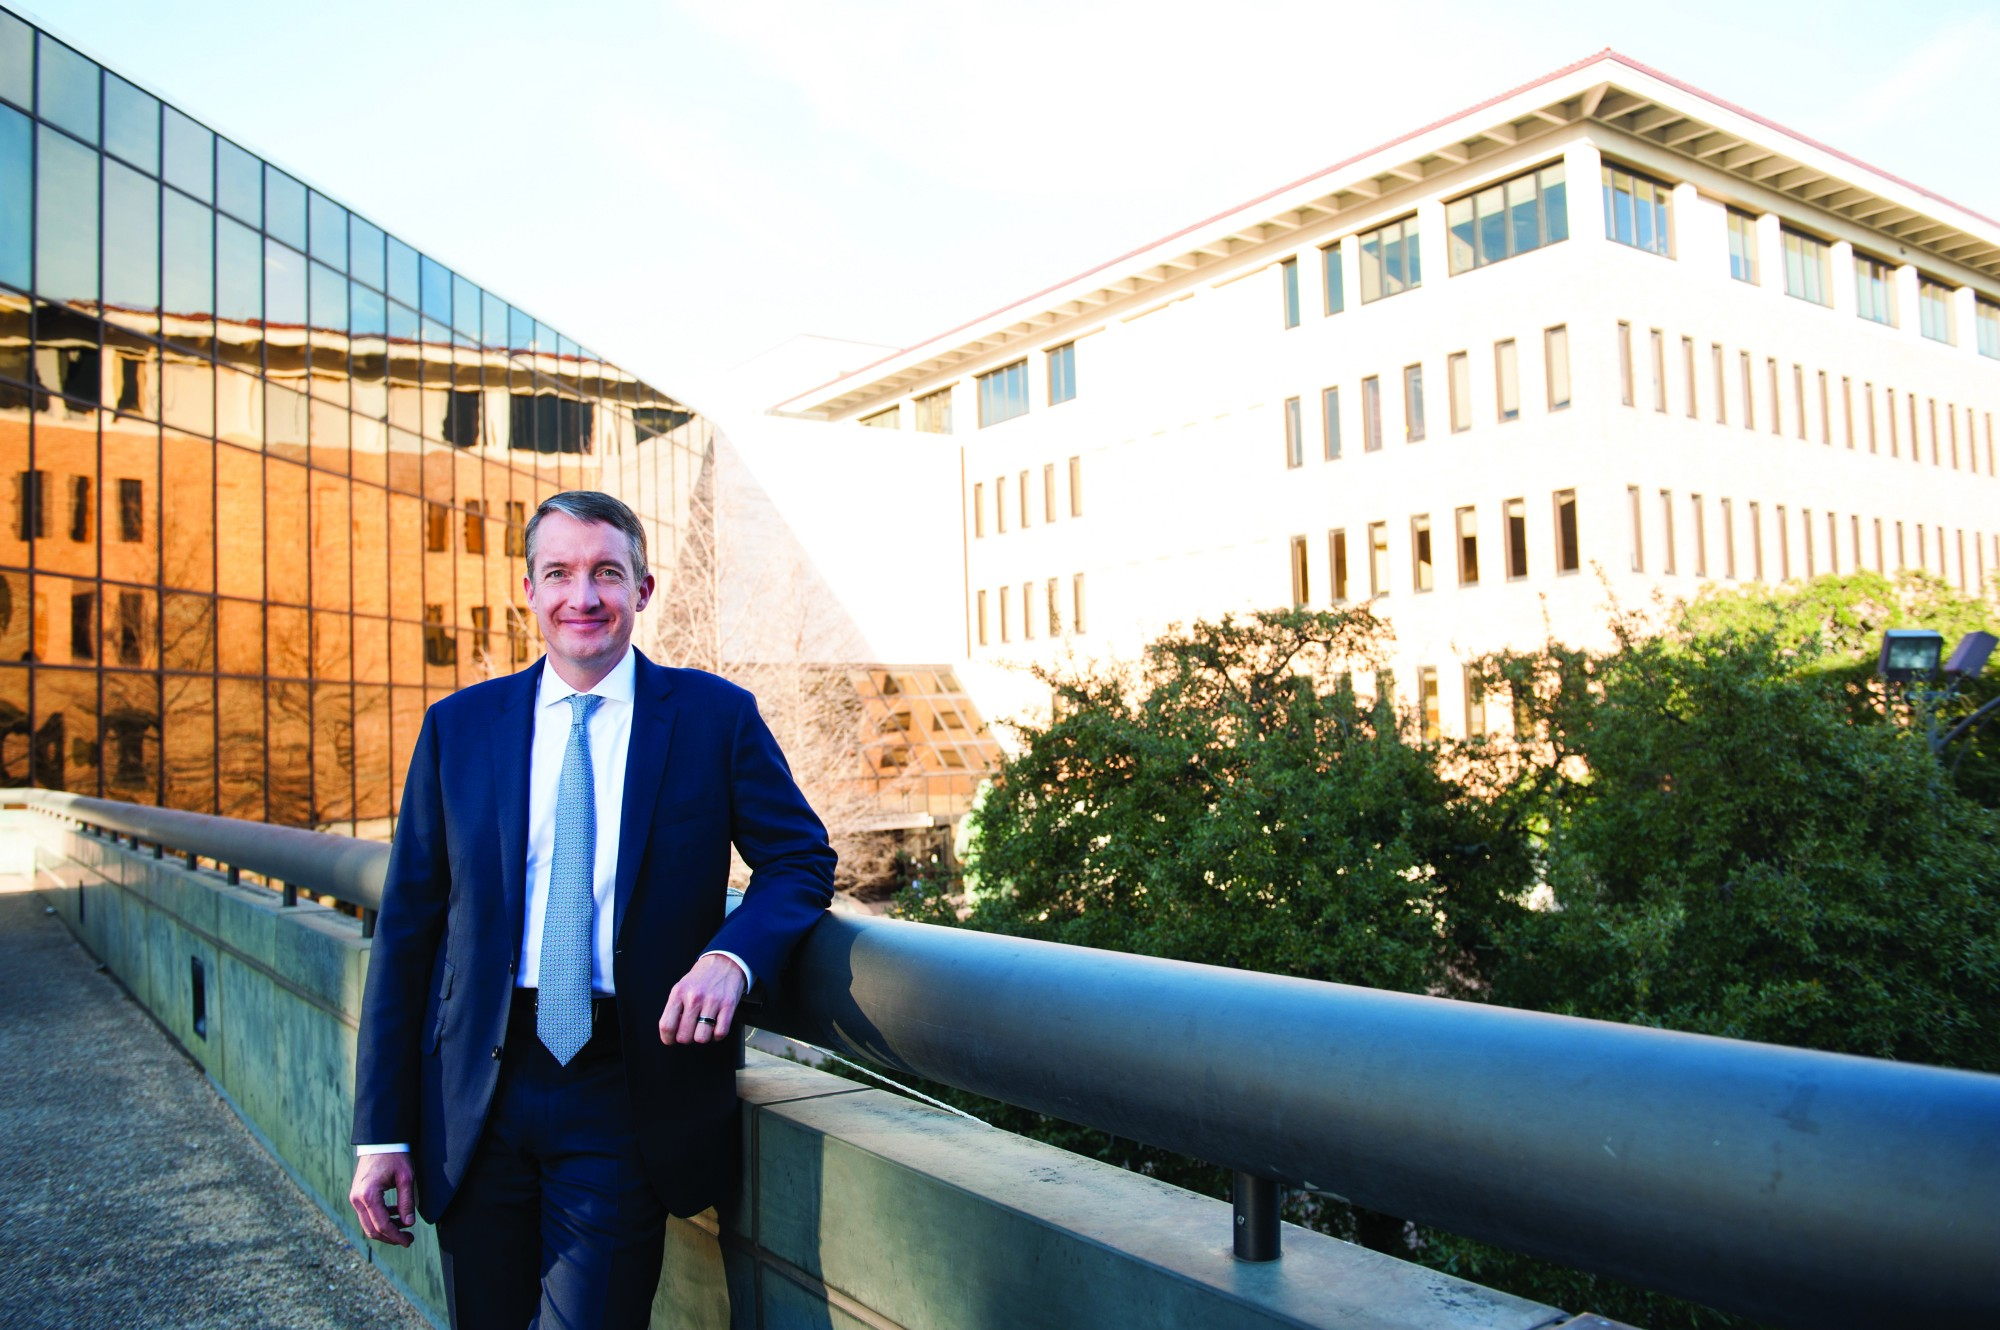 Jay Hartzell stands in front of the McCombs School of Business